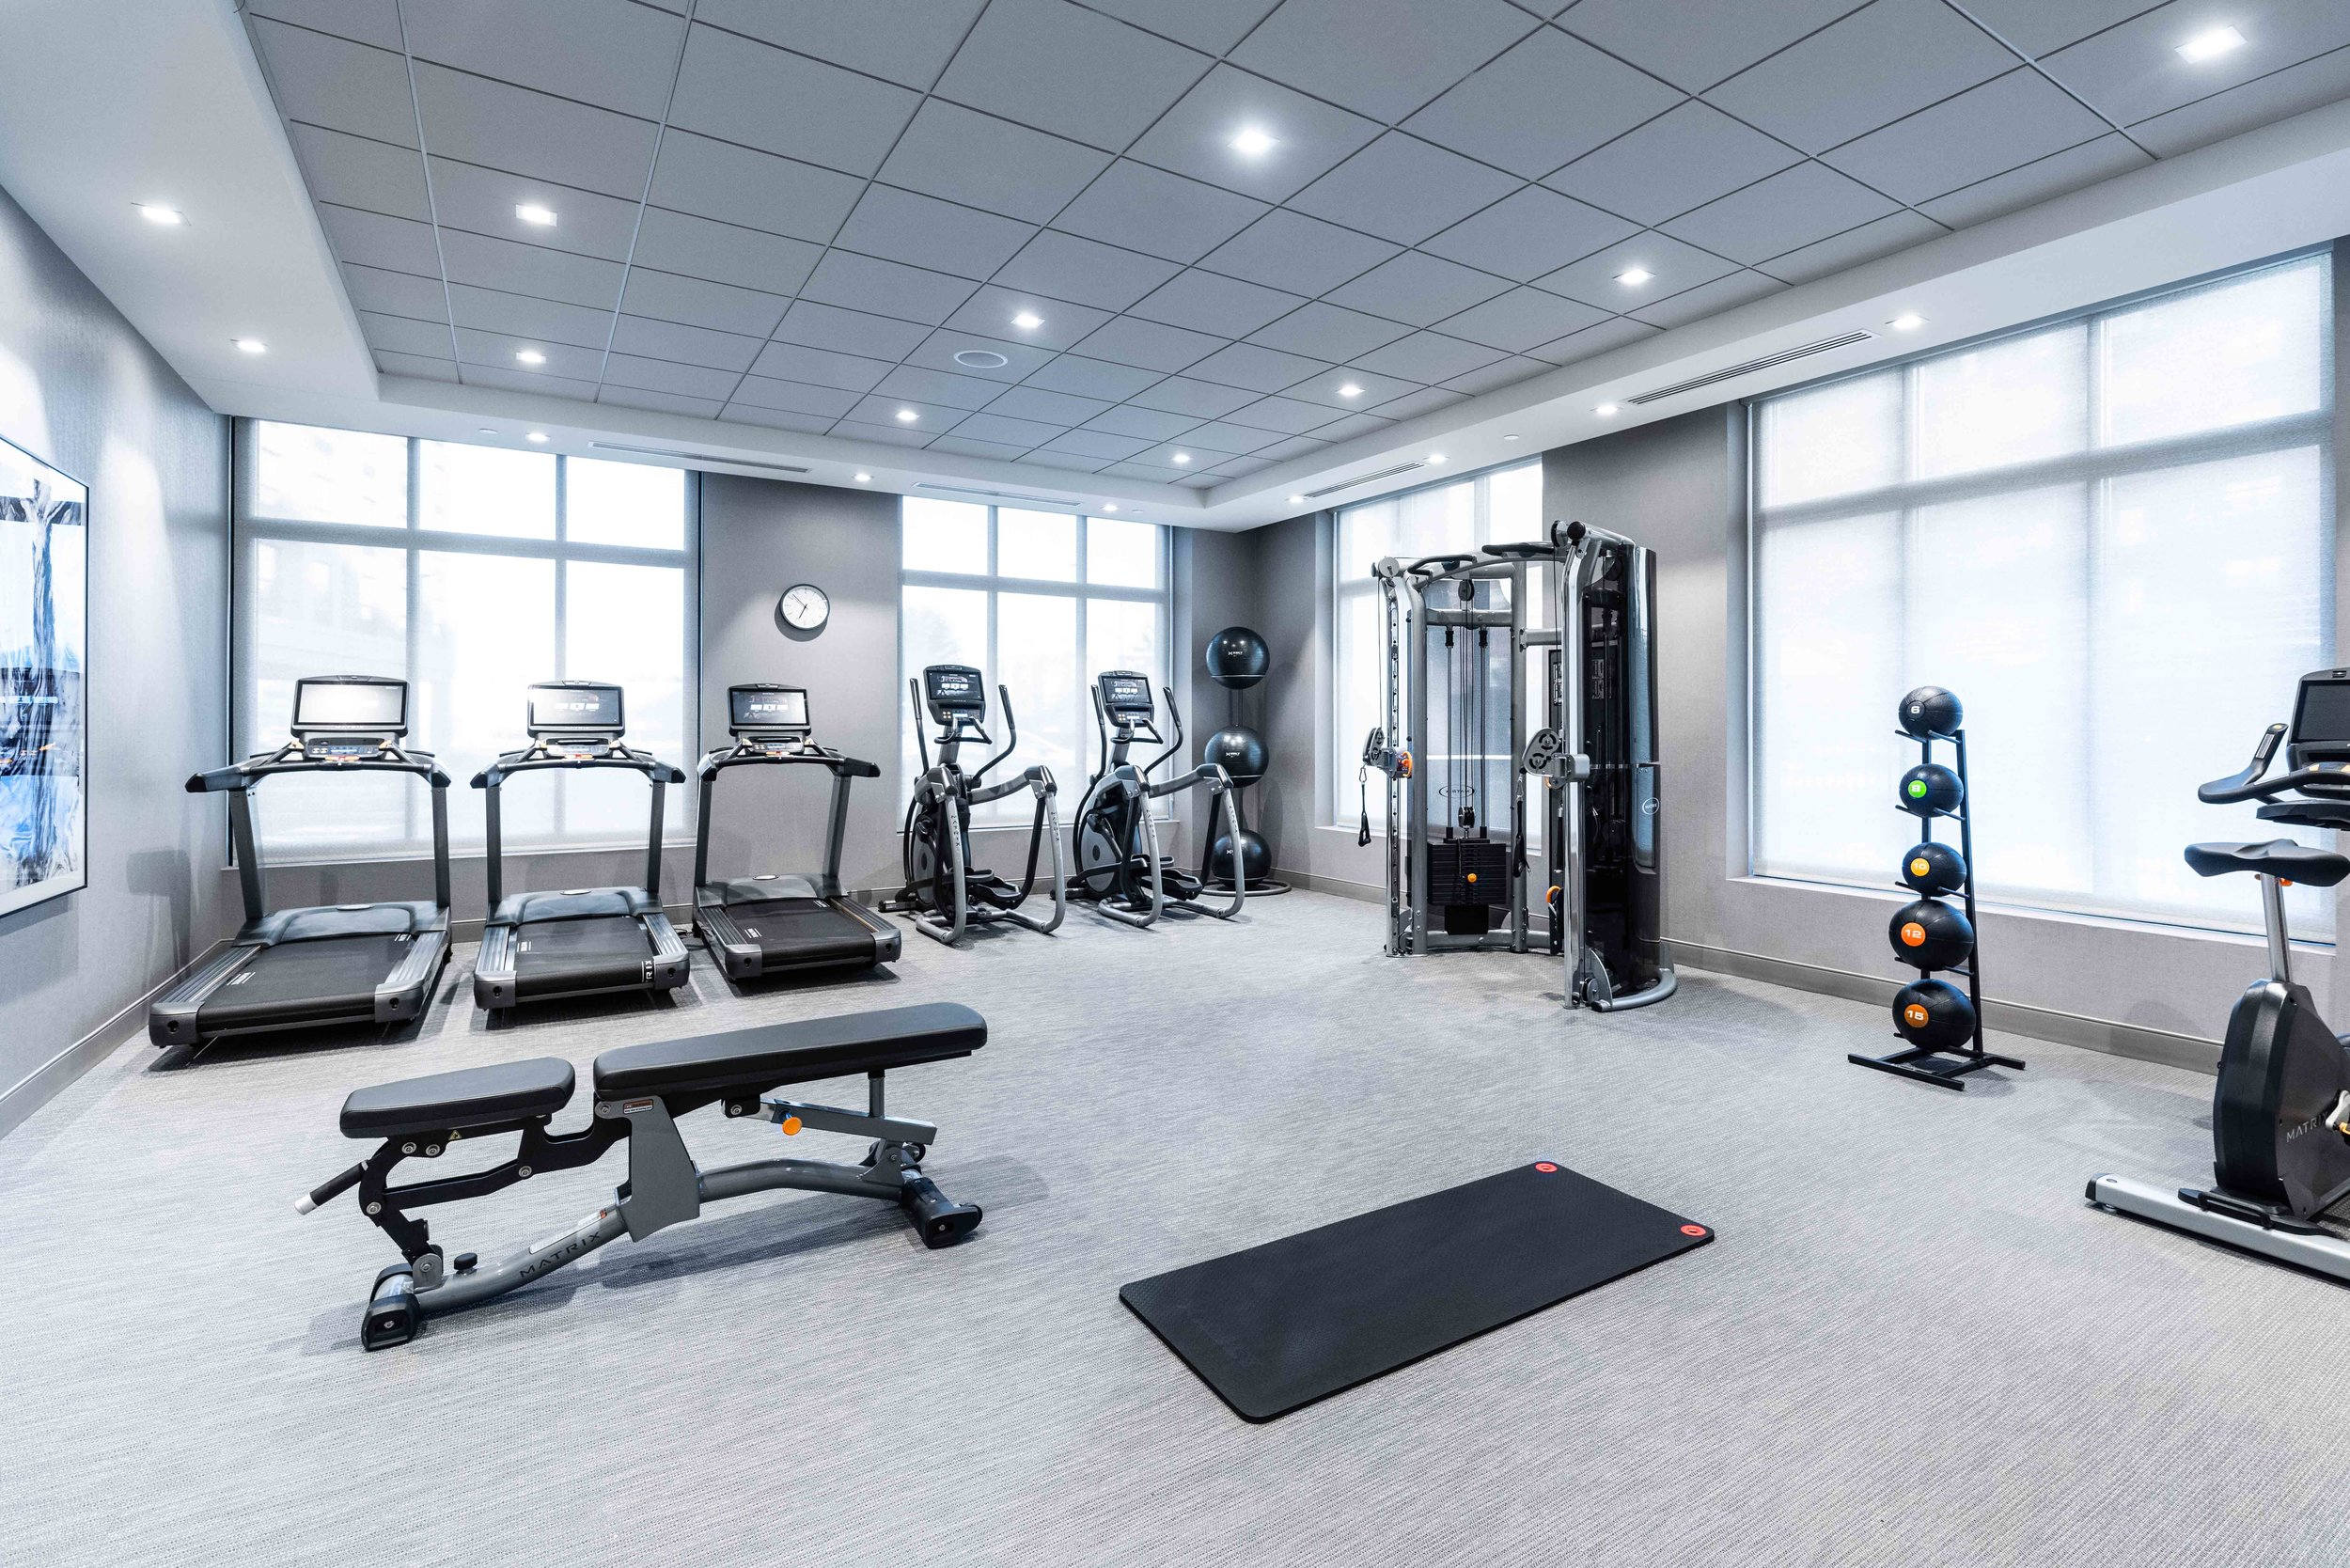 Stay Fit - Work out anytime of the day in our state-of-the-art fitness facility. A modern design with your needs in mind.